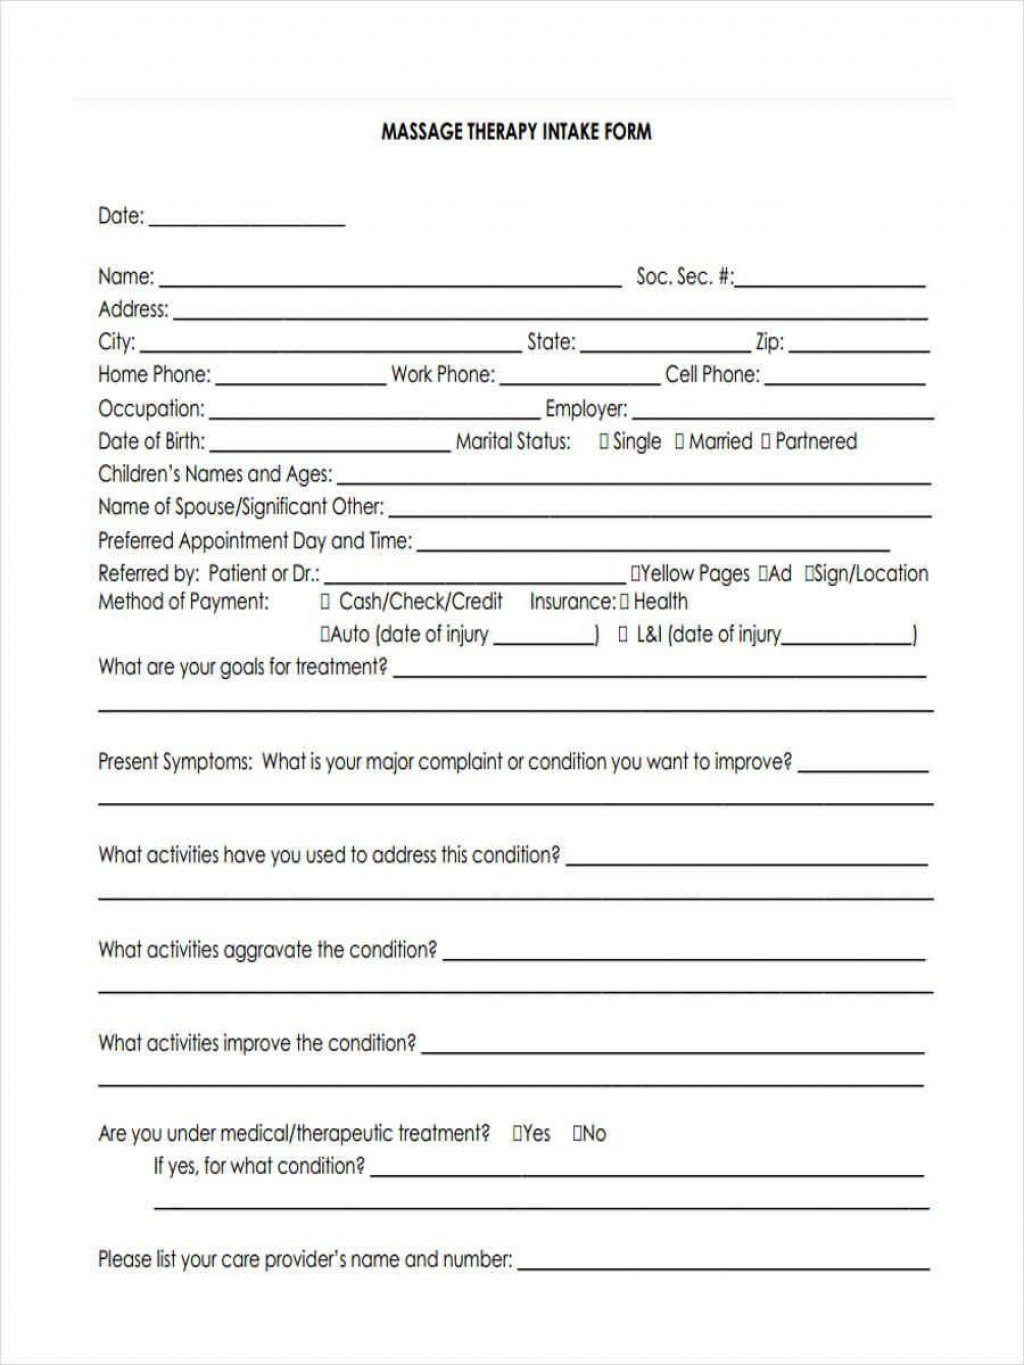 005 Excellent Free Patient Intake Form Template Photo  Massage Client NewLarge